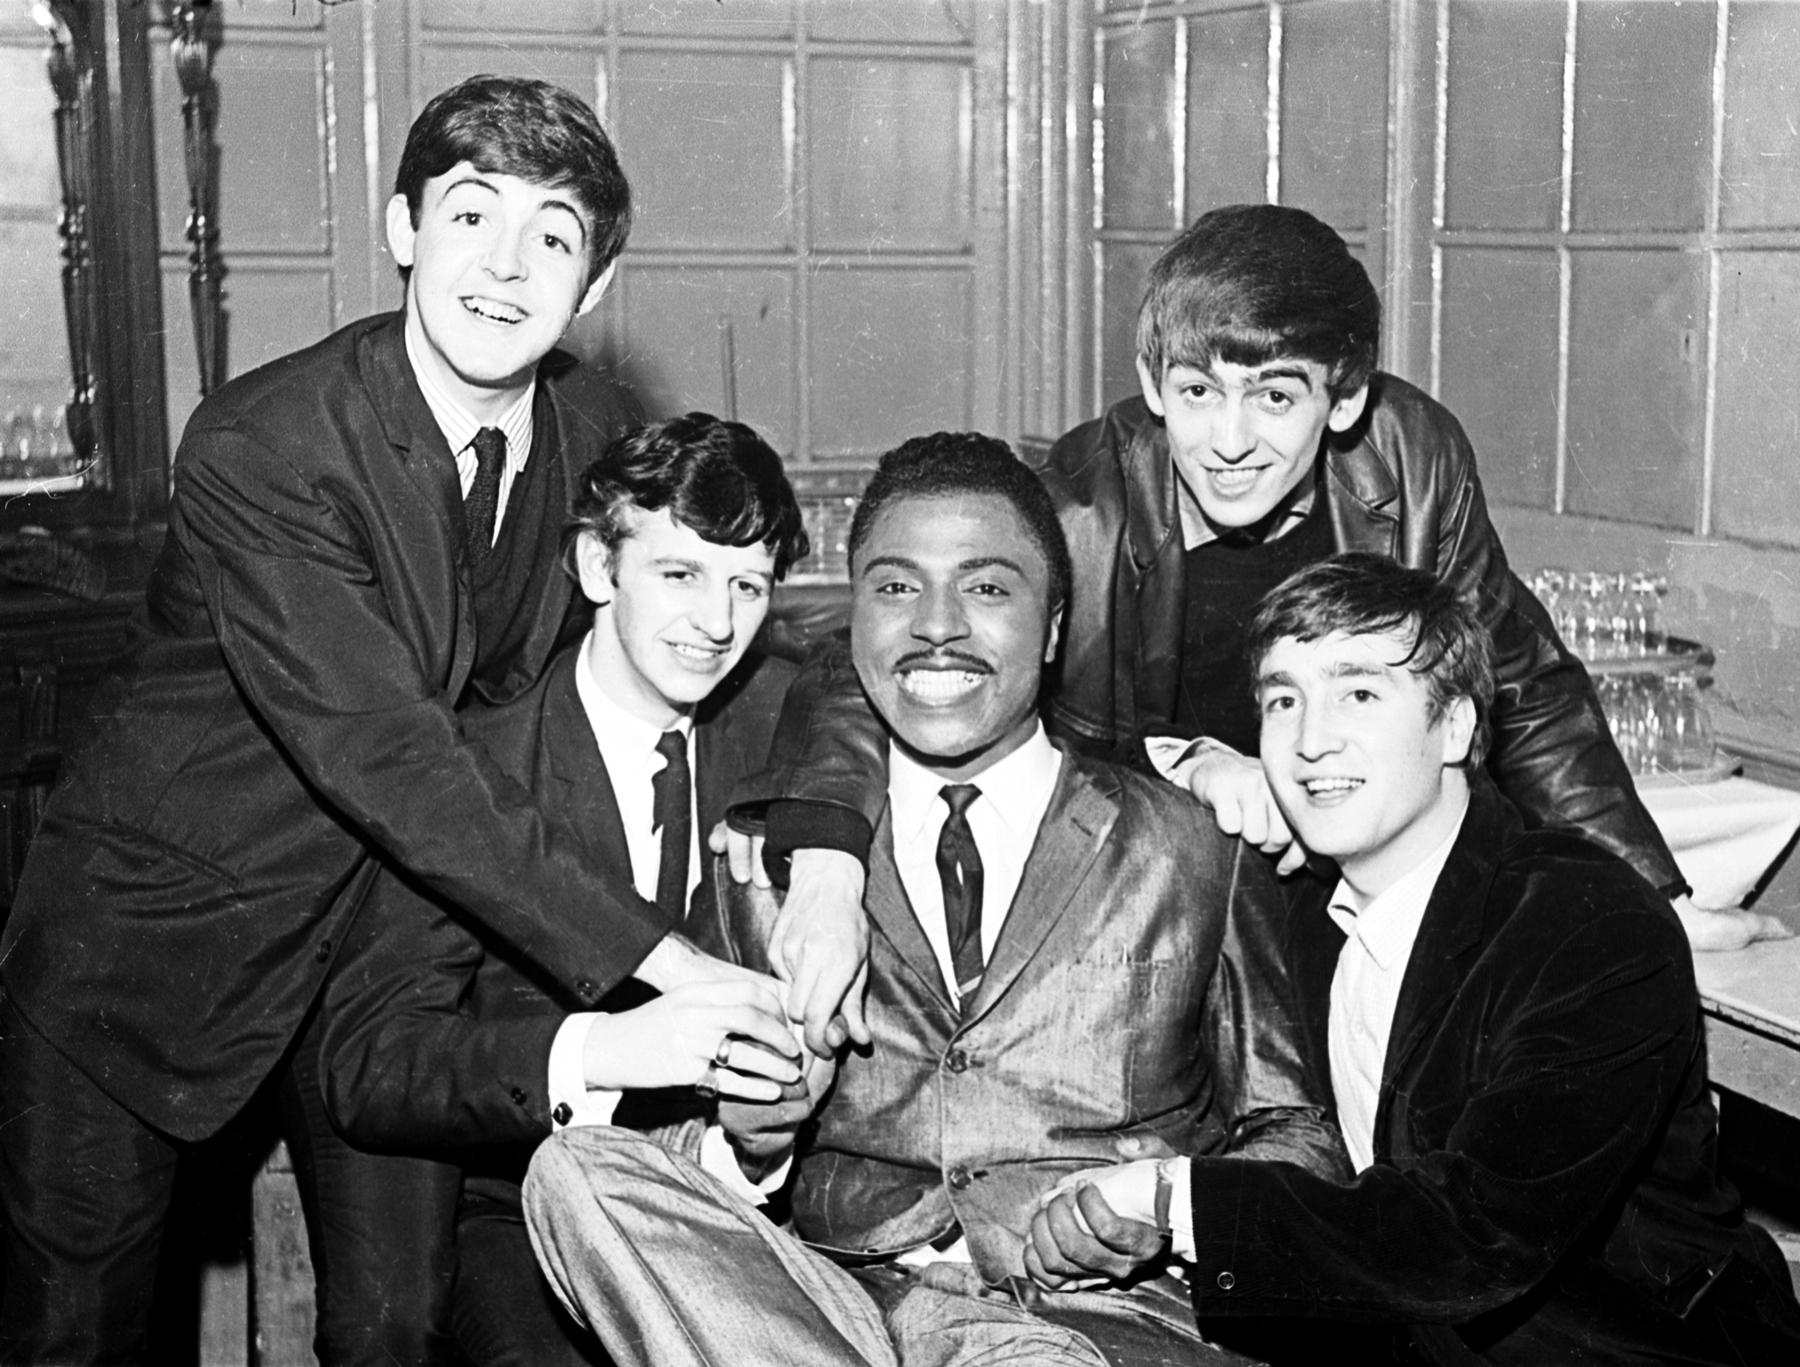 The Beatles pose with Little Richard backstage at the Tower Ballroom in New Brighton, October 12, 1962.credit: (c) Apple Corps Ltd.